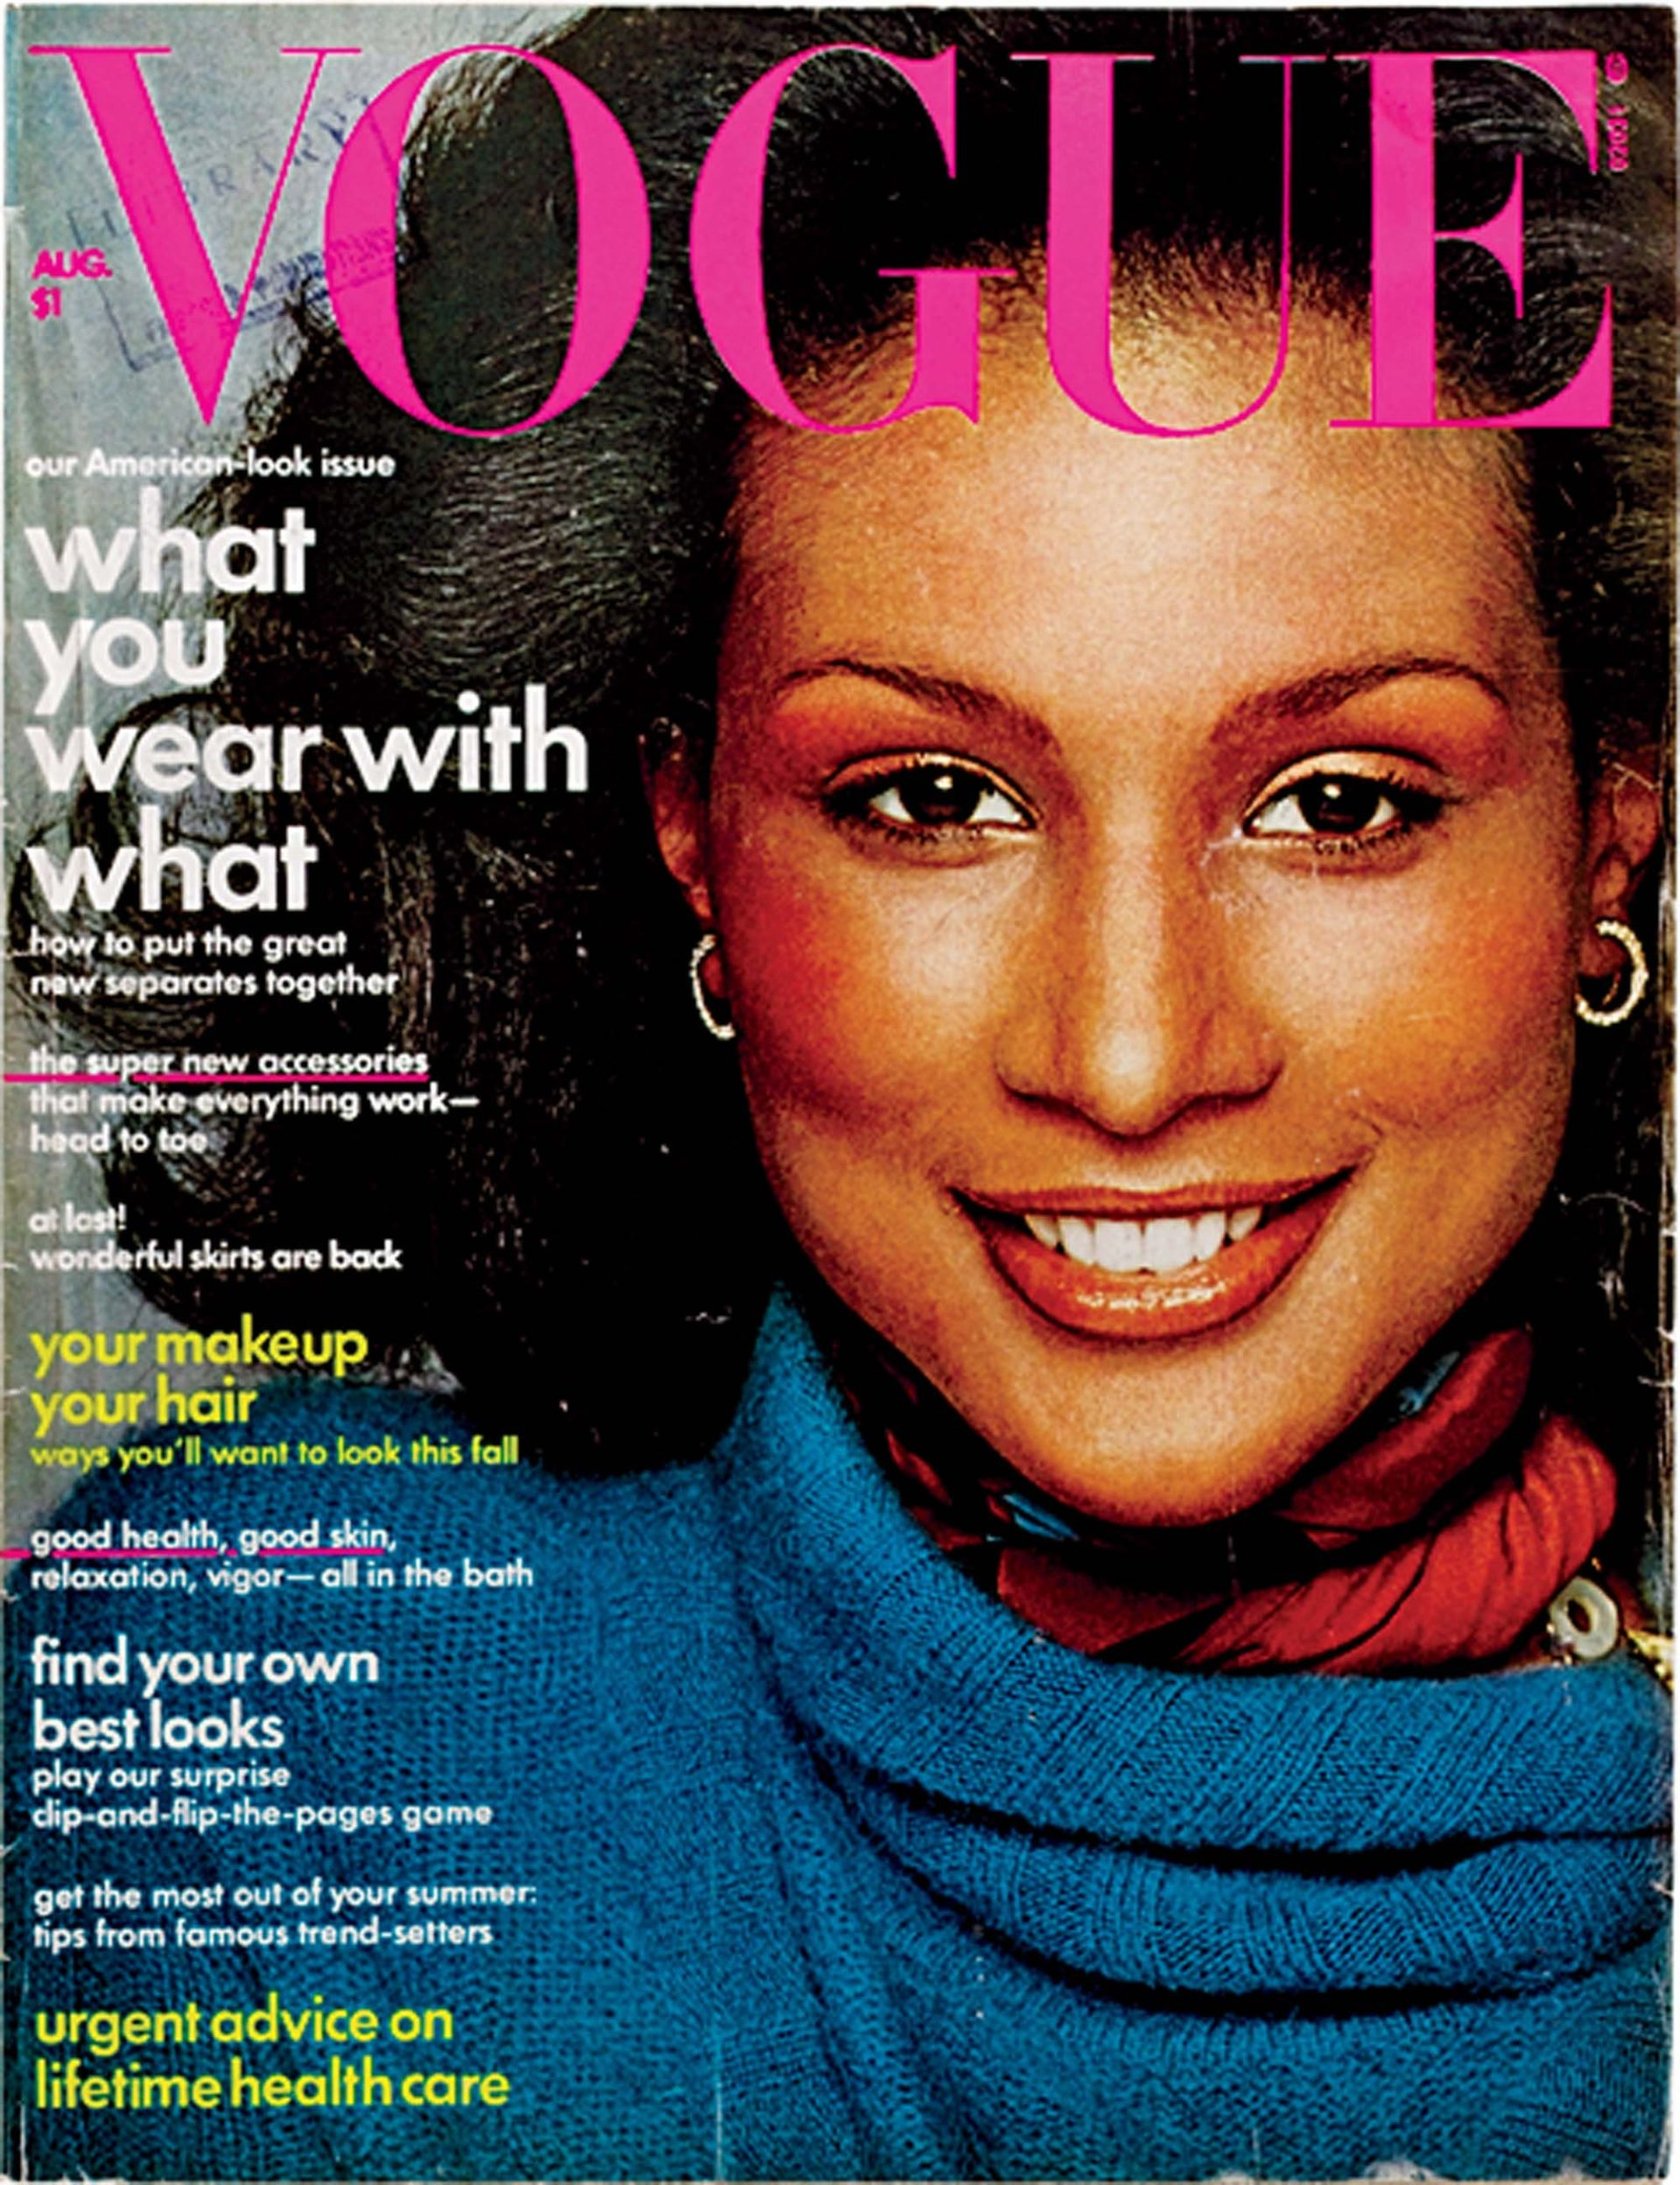 Beverly Johnson American Vogue cover, 1974